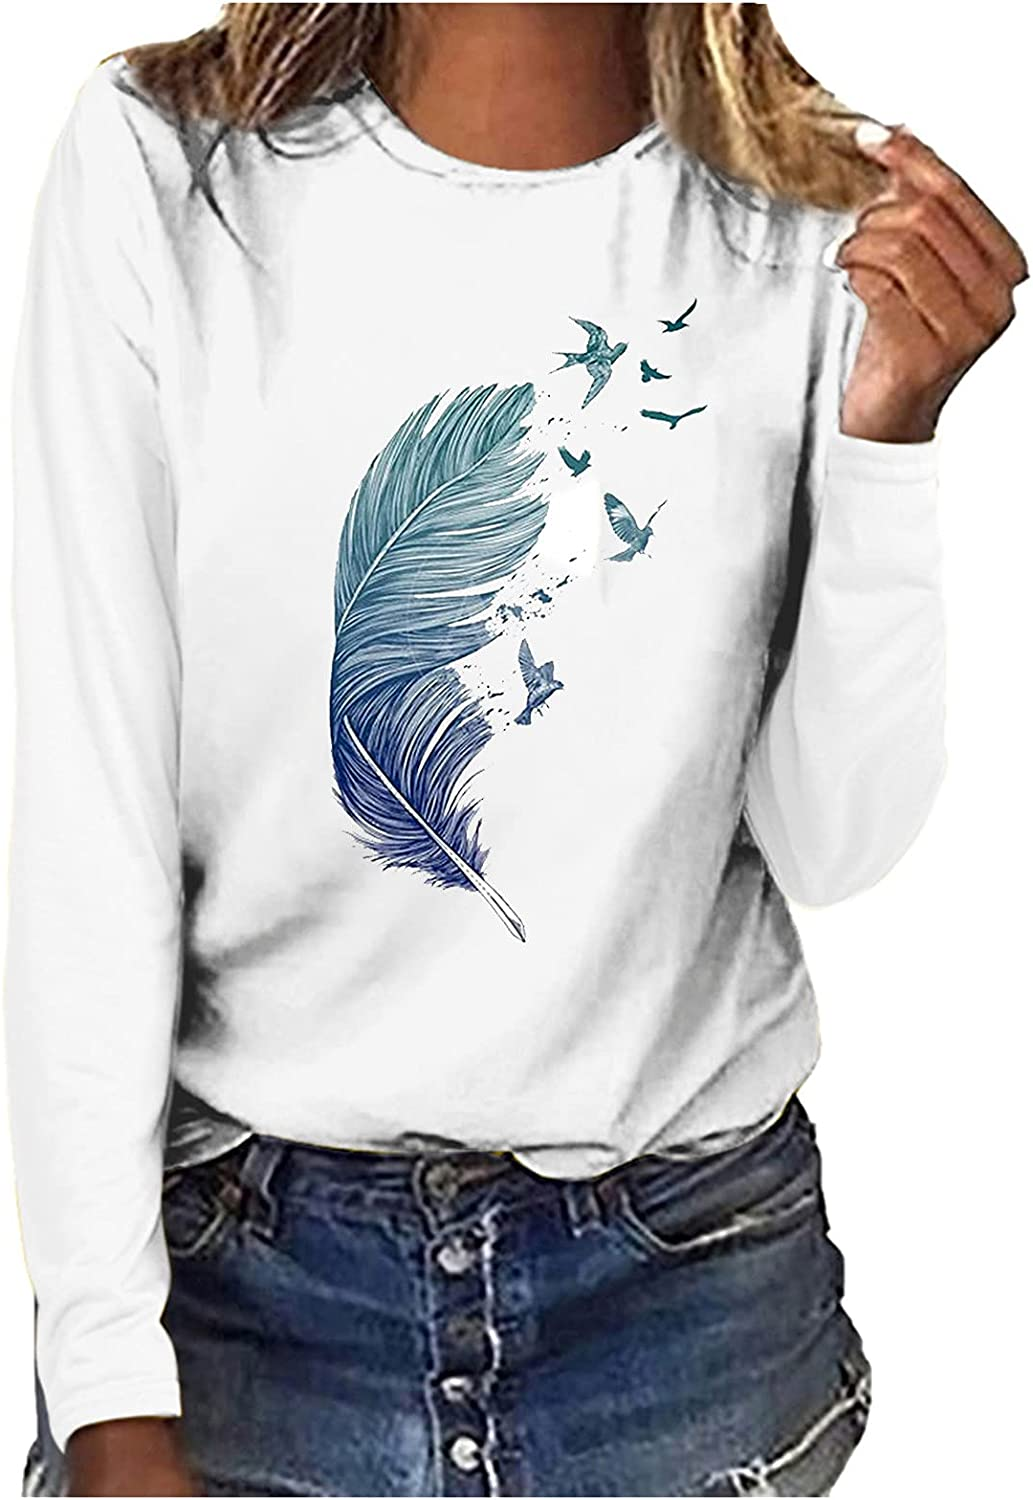 Women's Blouse Tops Fashion Printed Long Sleeve Casual O-Neck Loose T-Shirt Flowy Tunic Blouse Tops